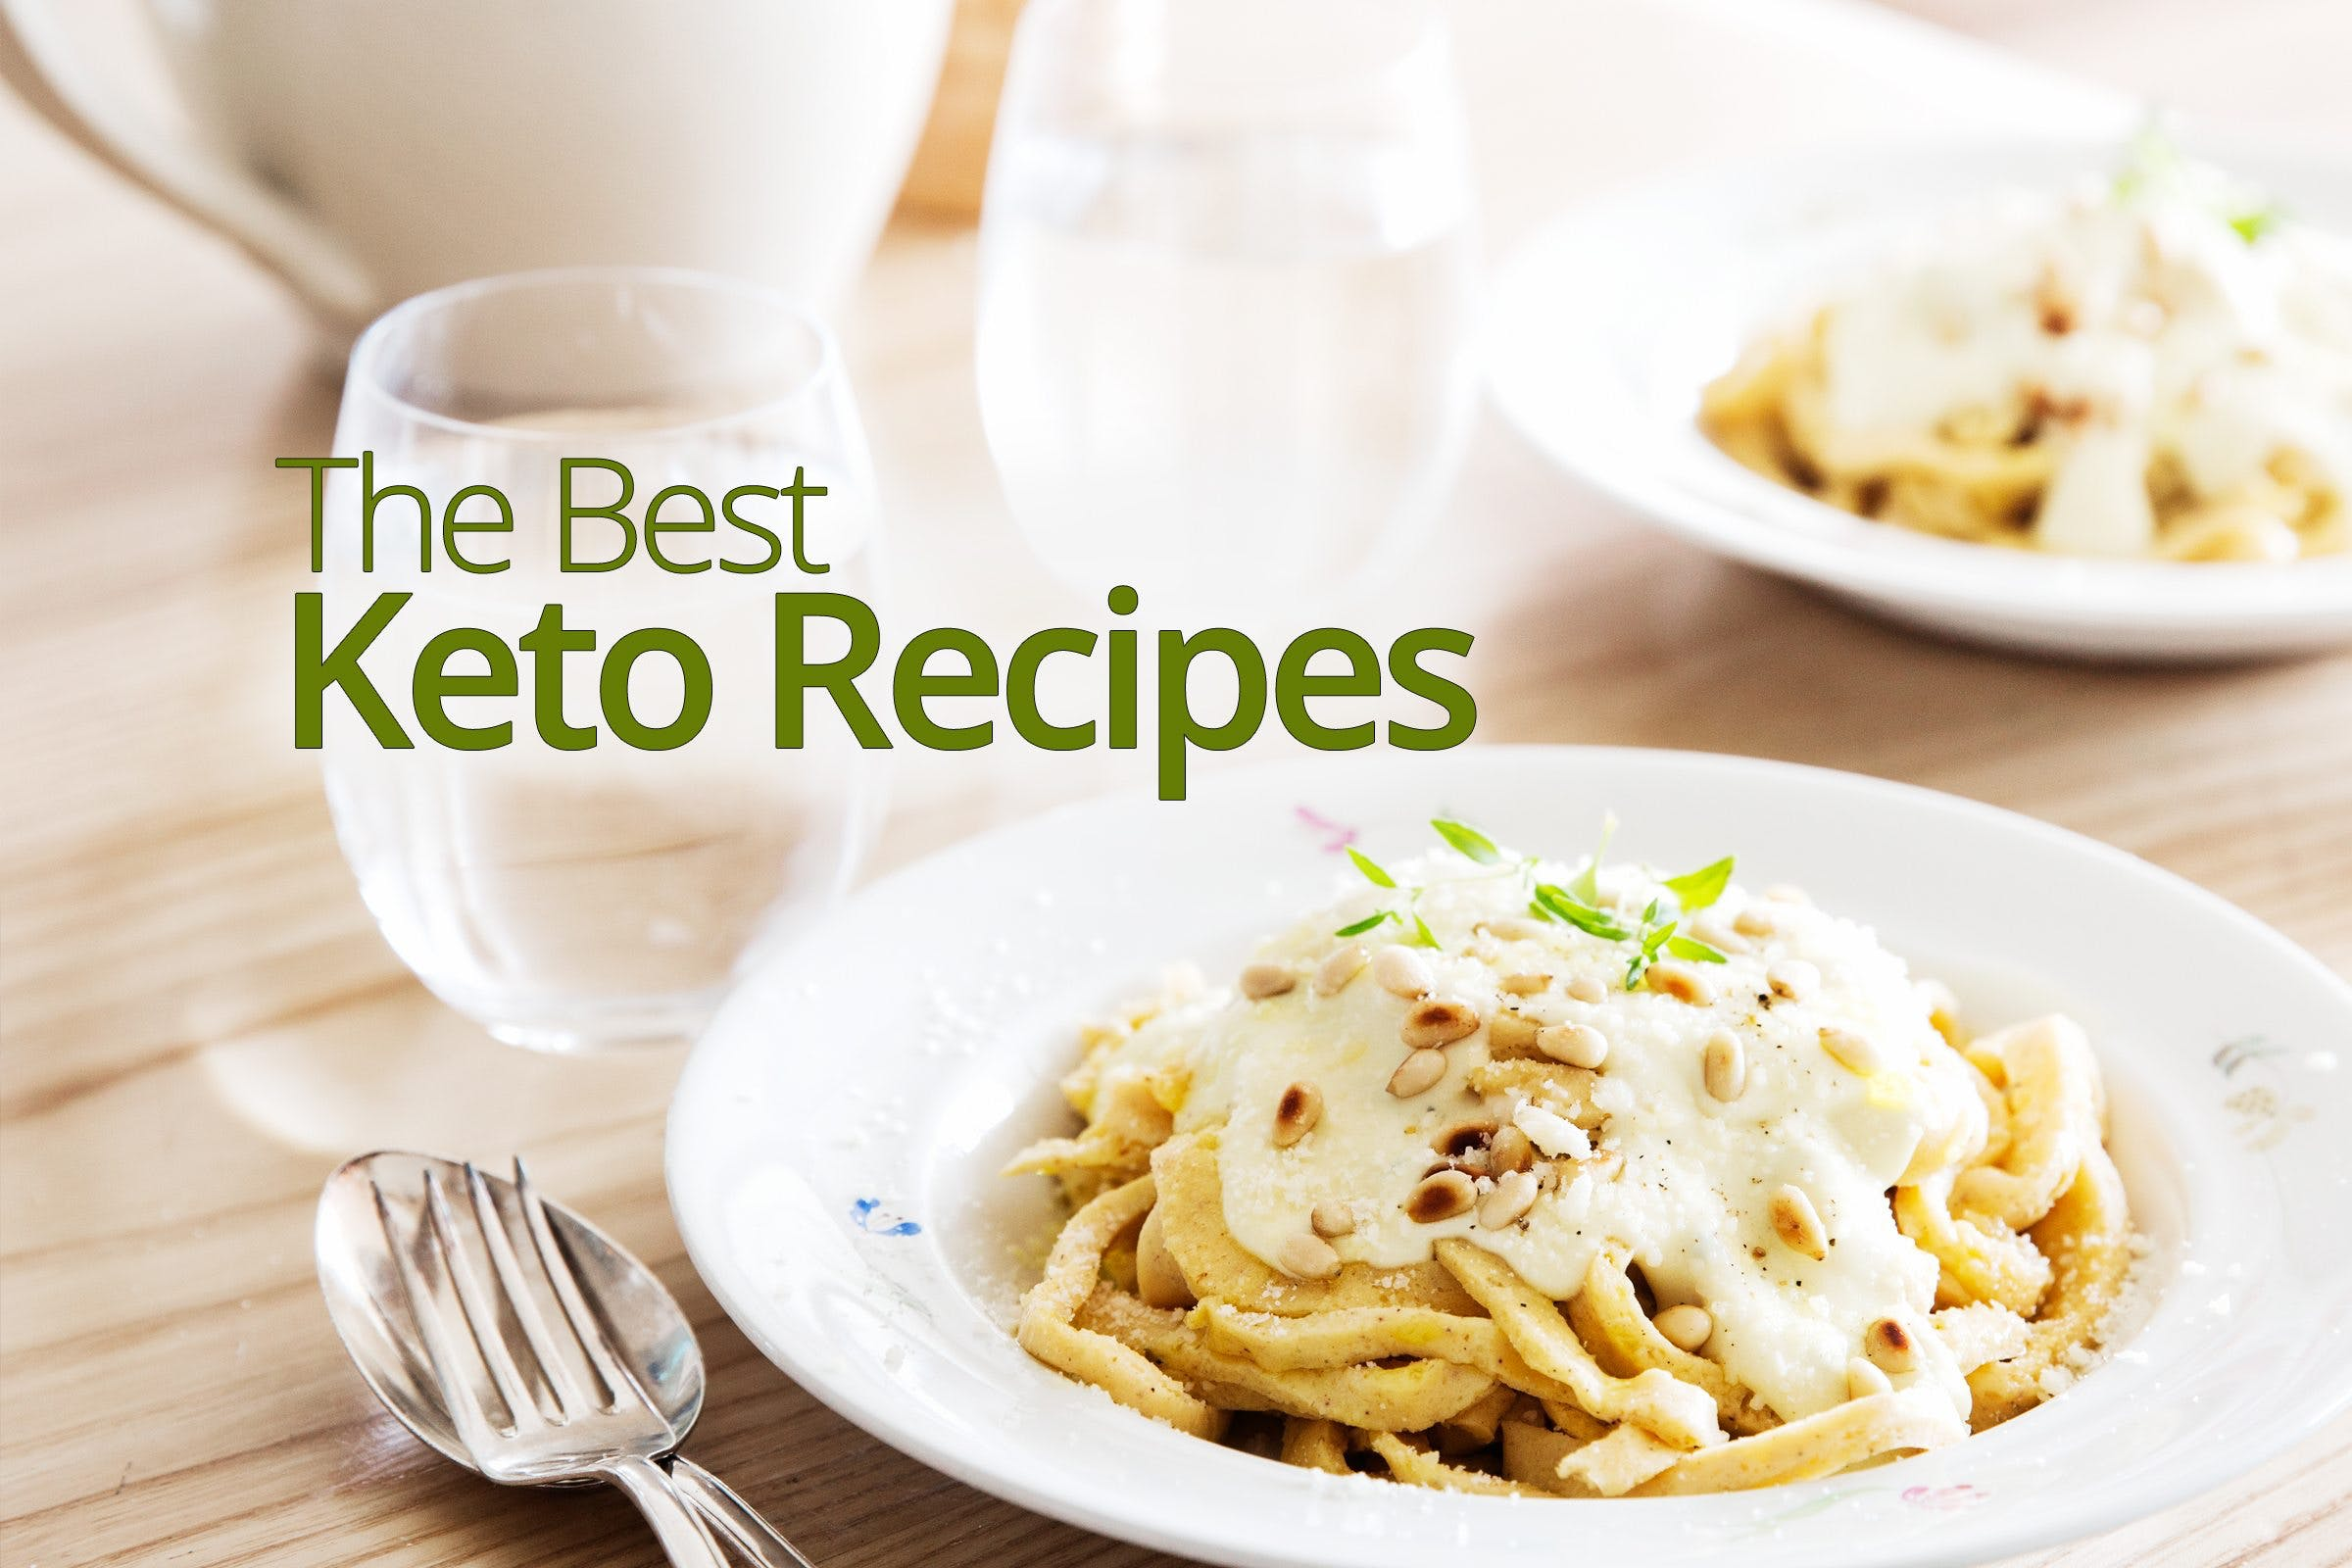 The Best Keto Recipes